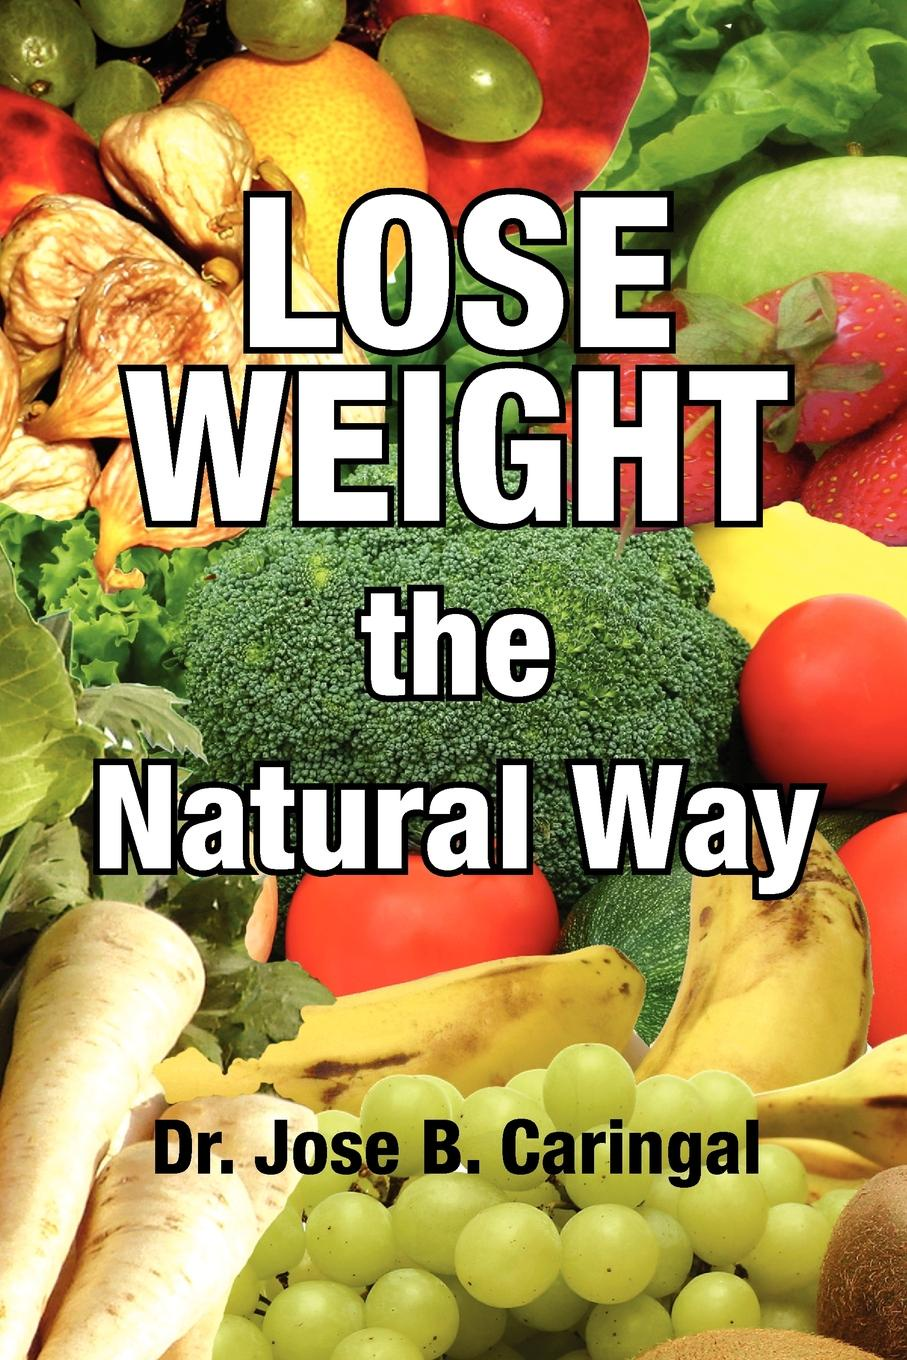 Jose B. Caringal, Dr Caringal Lose Weight the Natural Way